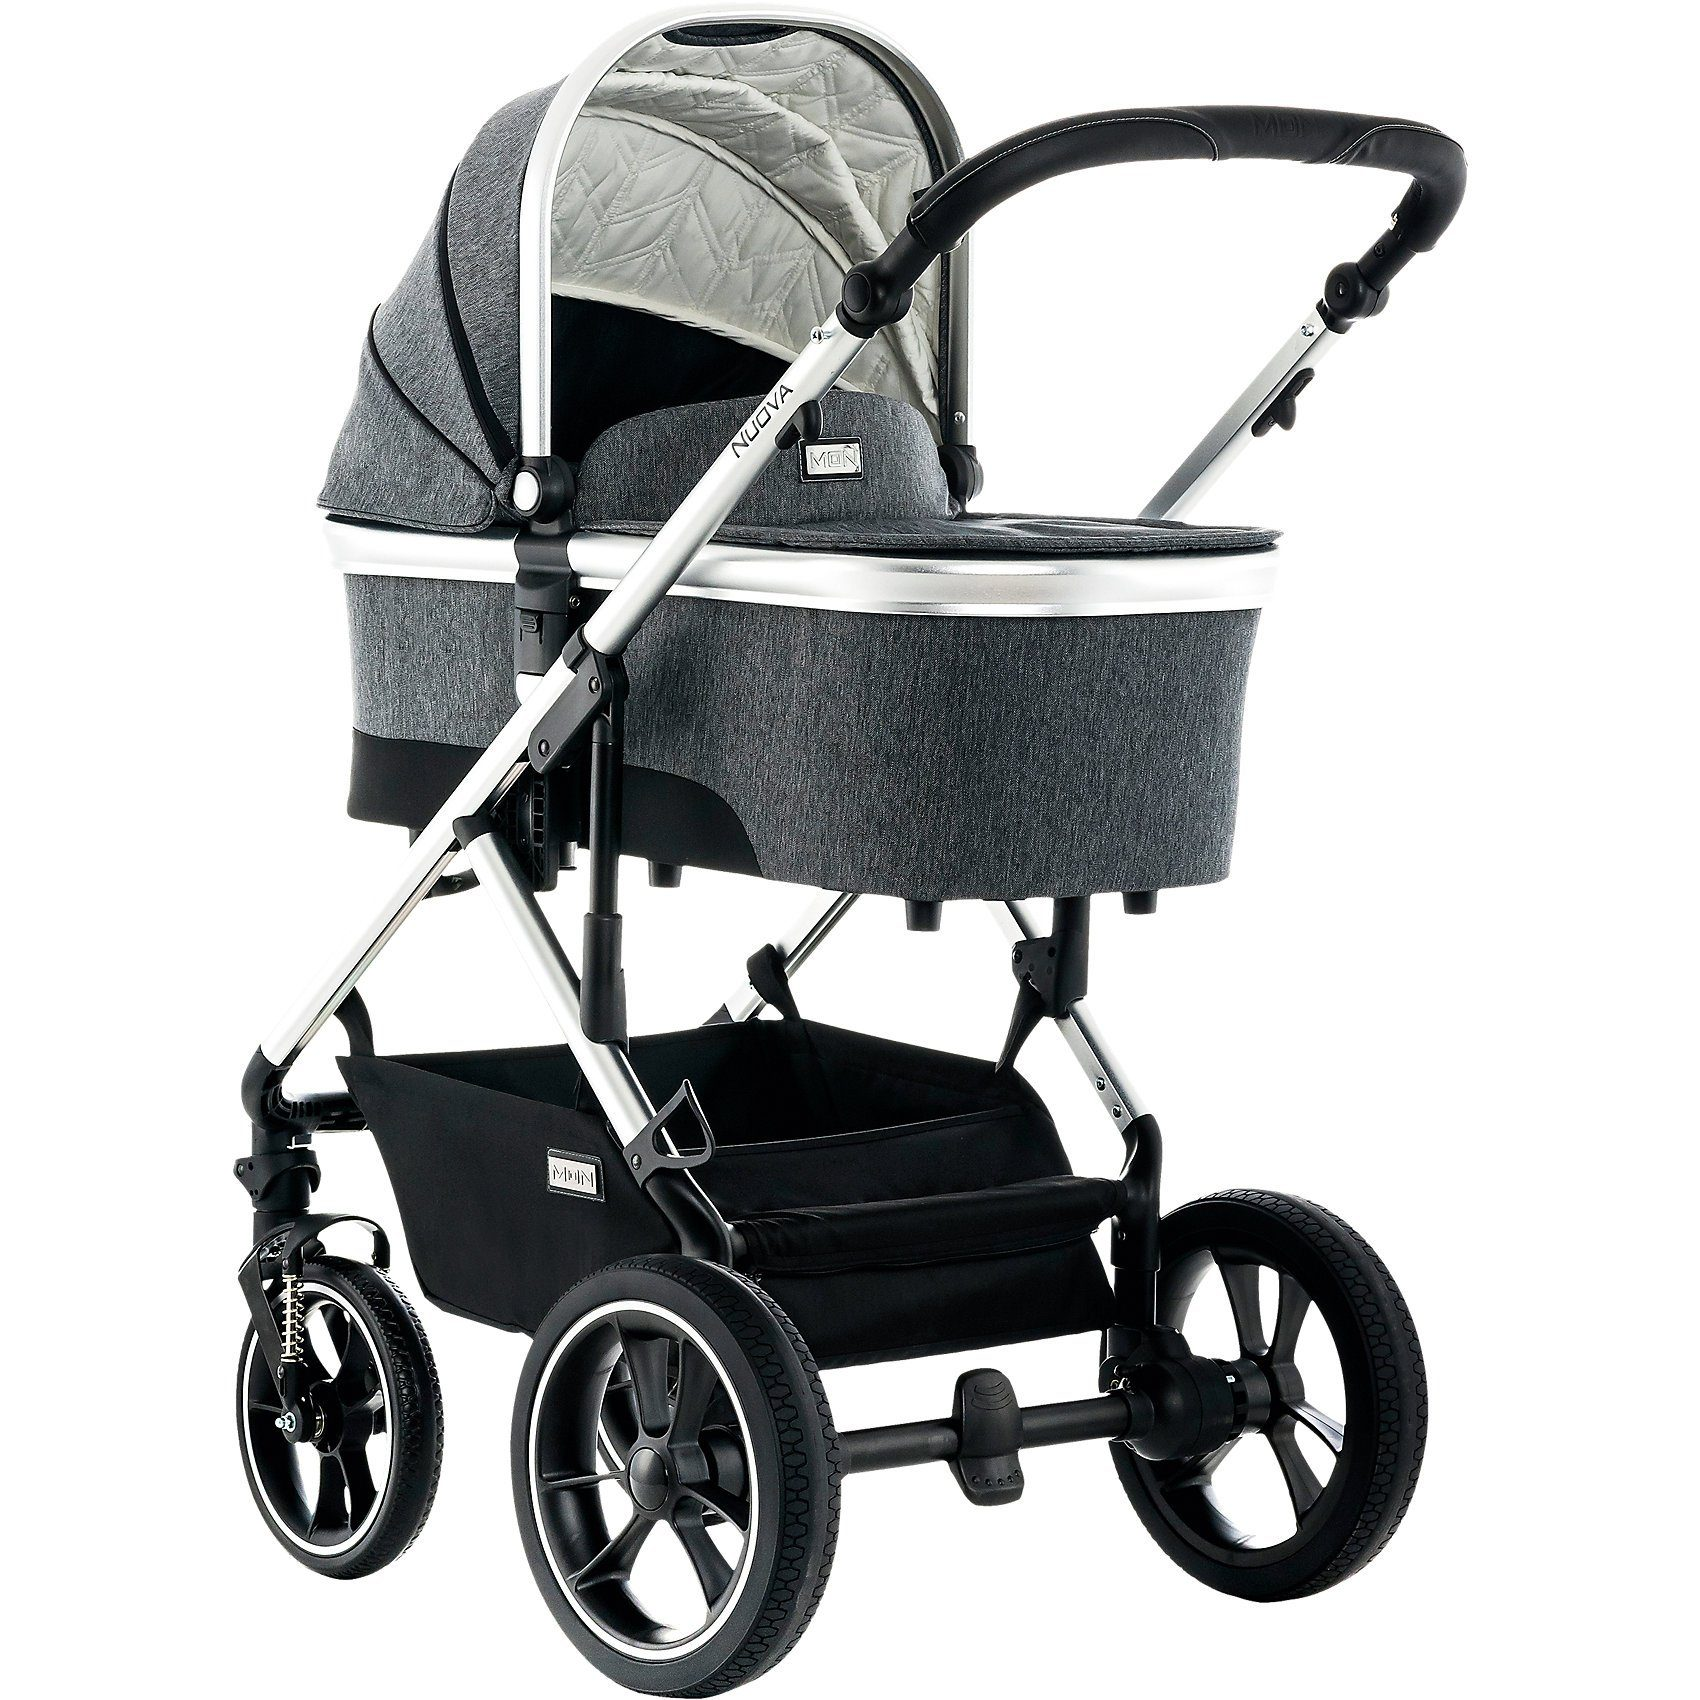 Kombi Kinderwagen 3 In 1 Abc Moon Kombi Kinderwagen Nuova City Stone Fishbone 2018